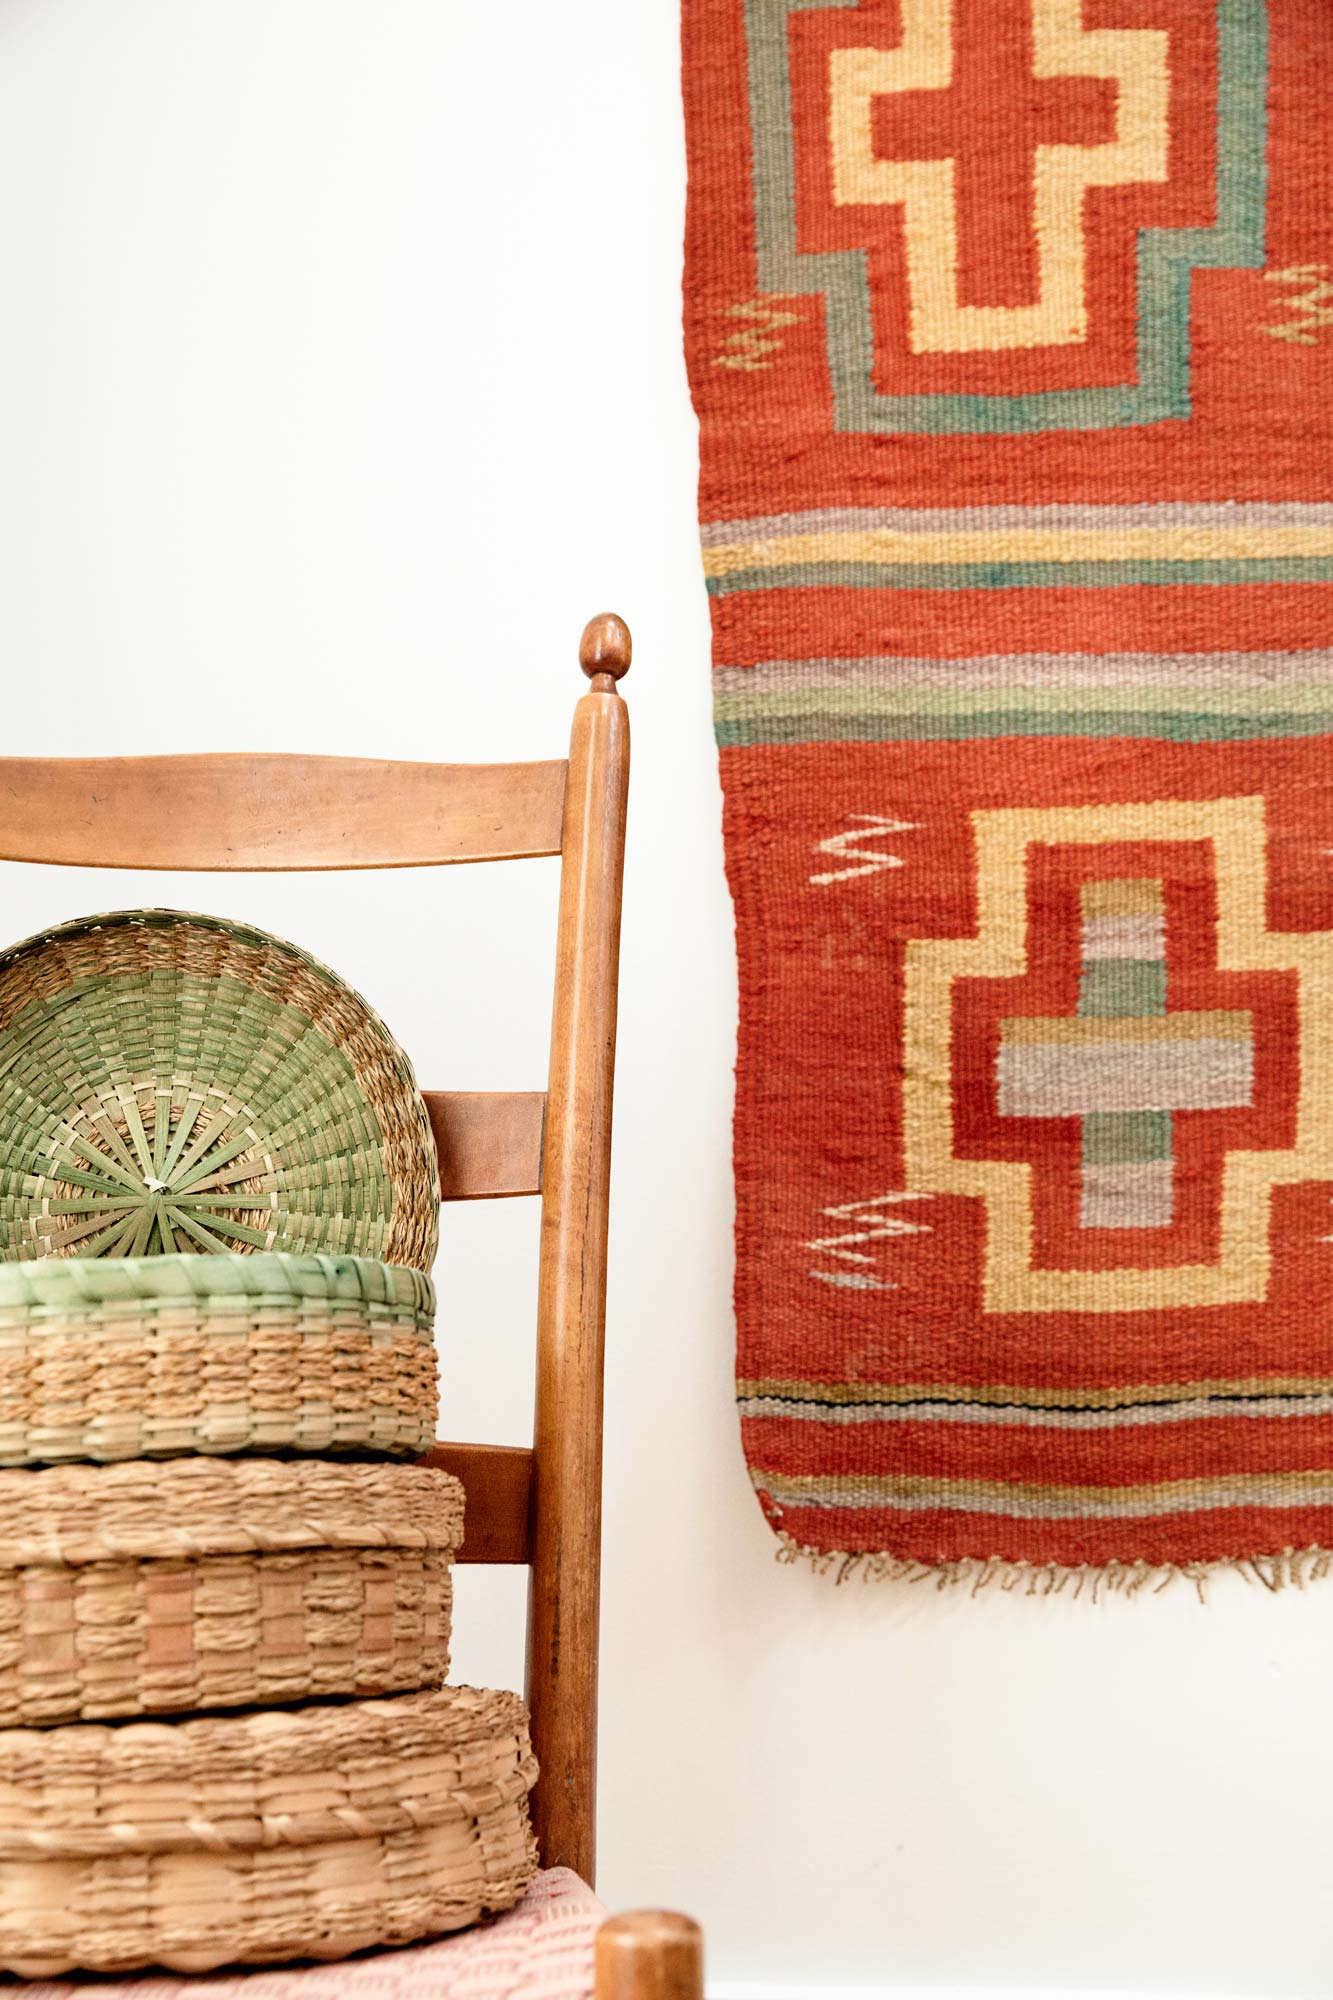 "1950s-60s Maine Wabanaki ""flat"" baskets, made from braided sweetgrass and dyed brown ash, sit atop a 19th-century Shaker child's rocker in the main living area. A rare Zuni blanket circa 1880 hangs on the wall."